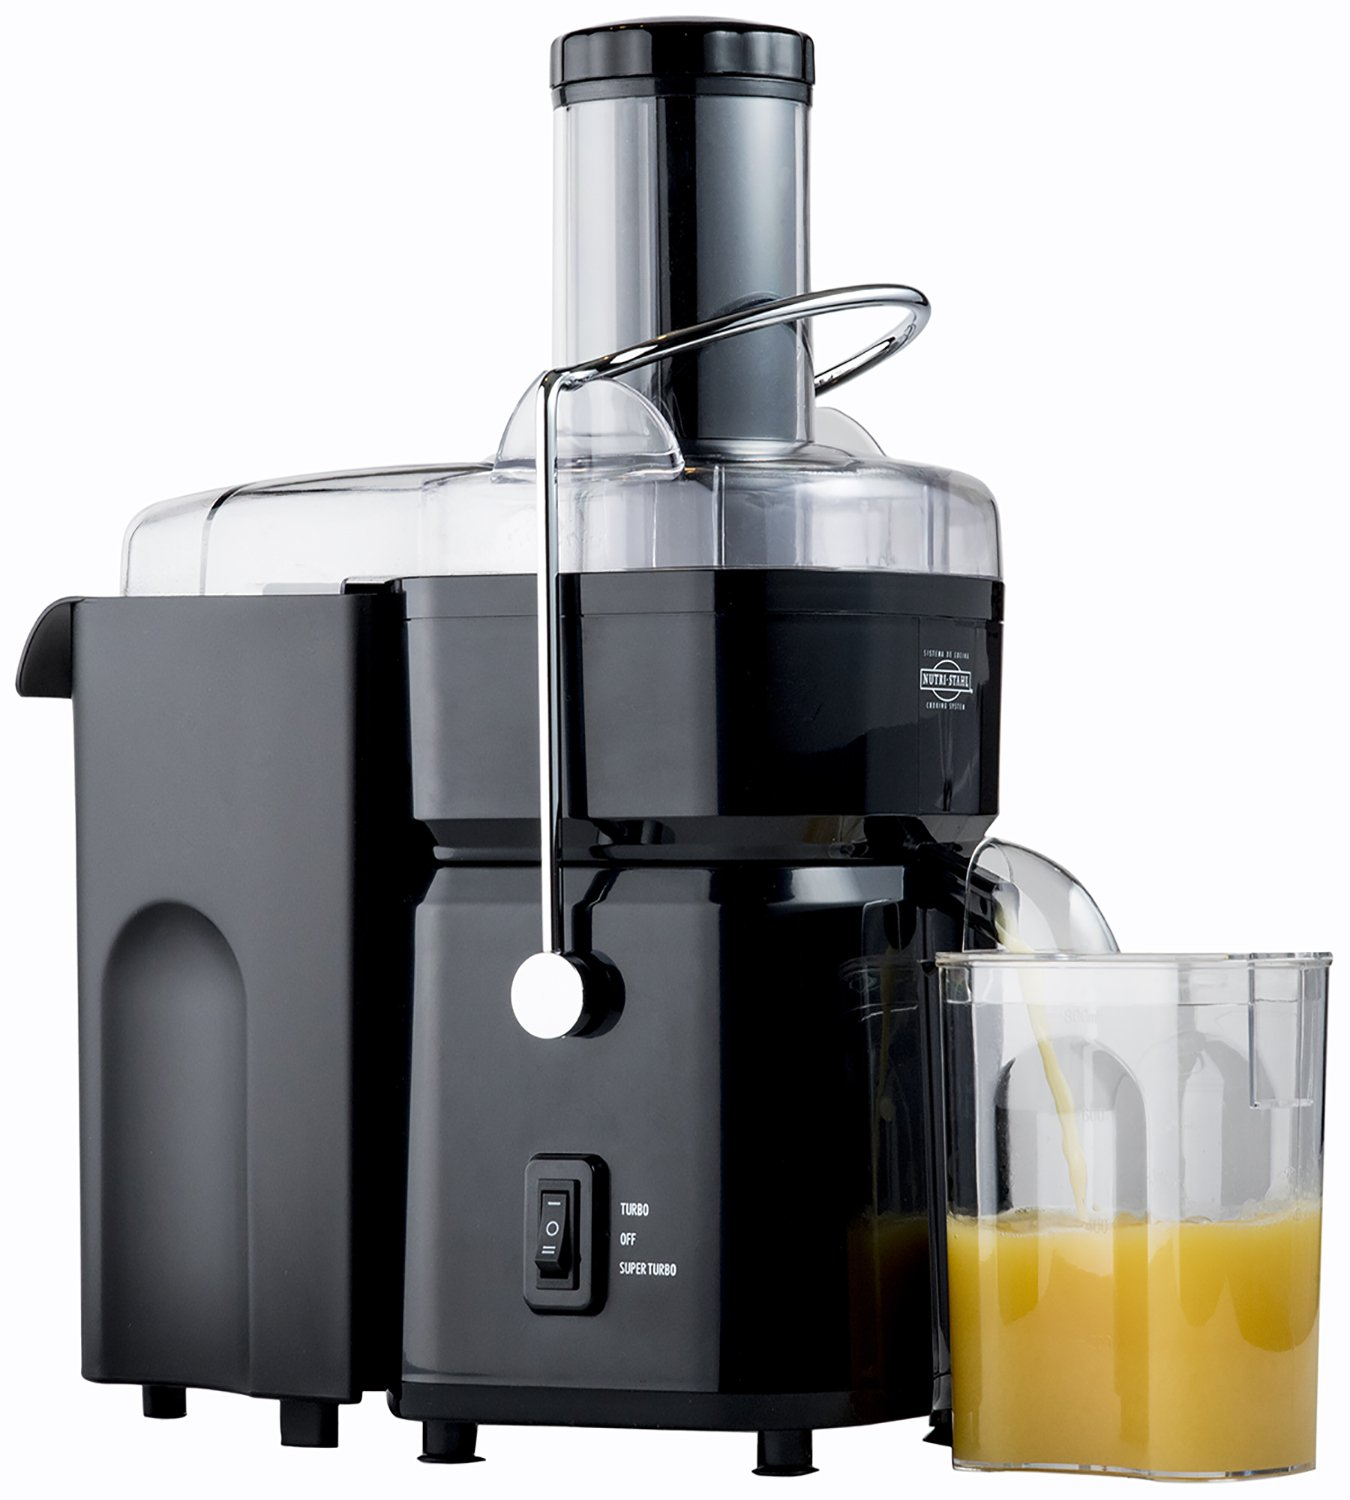 Nutri-Stahl Juicer Machine - 700W Fruit and Vegetable Extractor NJ-9300LI